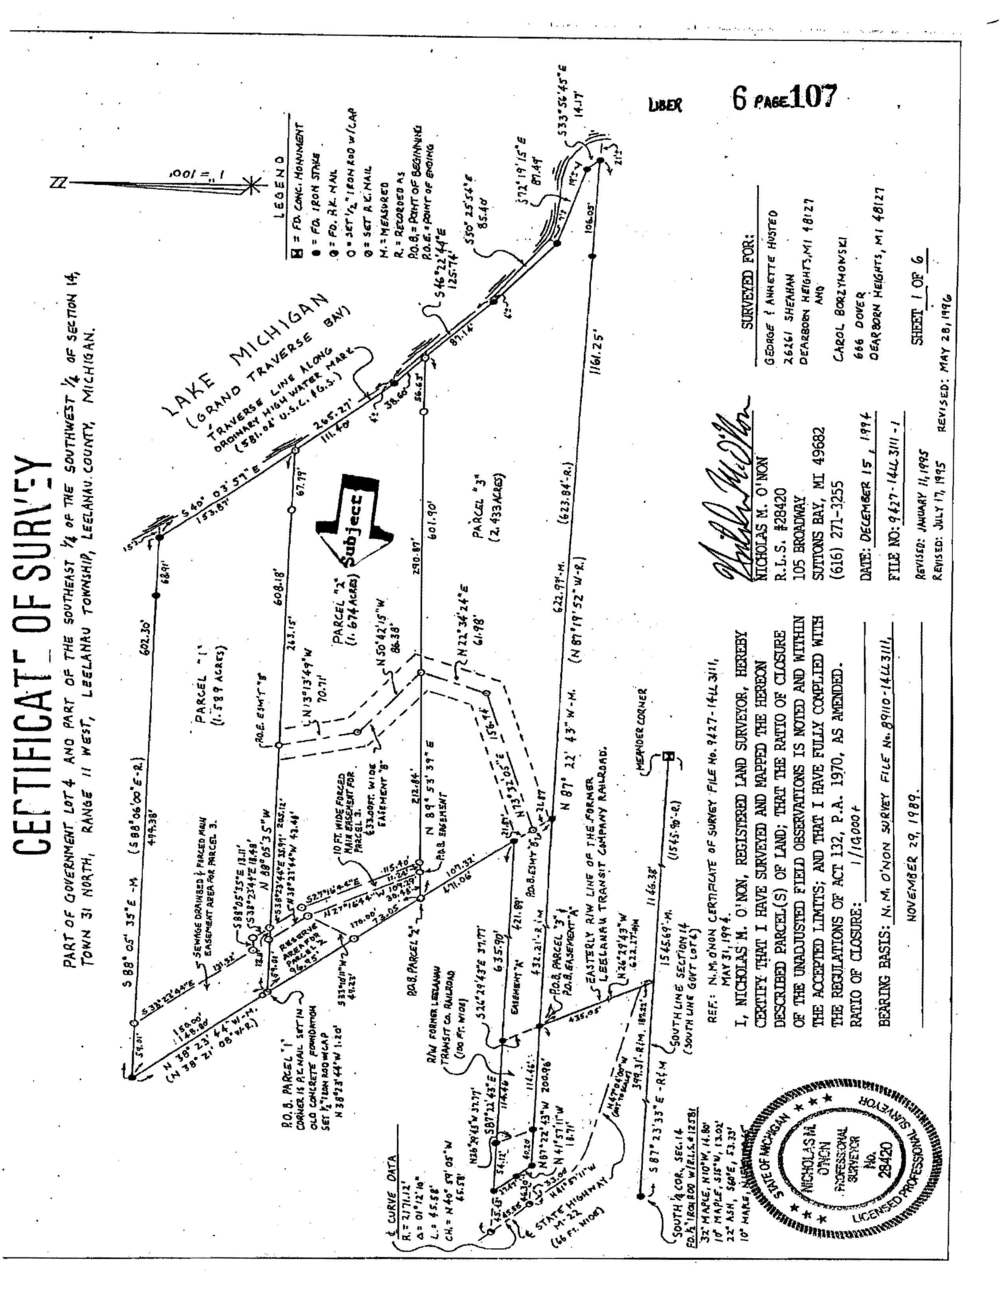 7156 N W Bay Shore Drive, Northport, MI Vacant waterfront lot for sale by Oltersdorf Realty LLC Marketing Packet (6).jpg